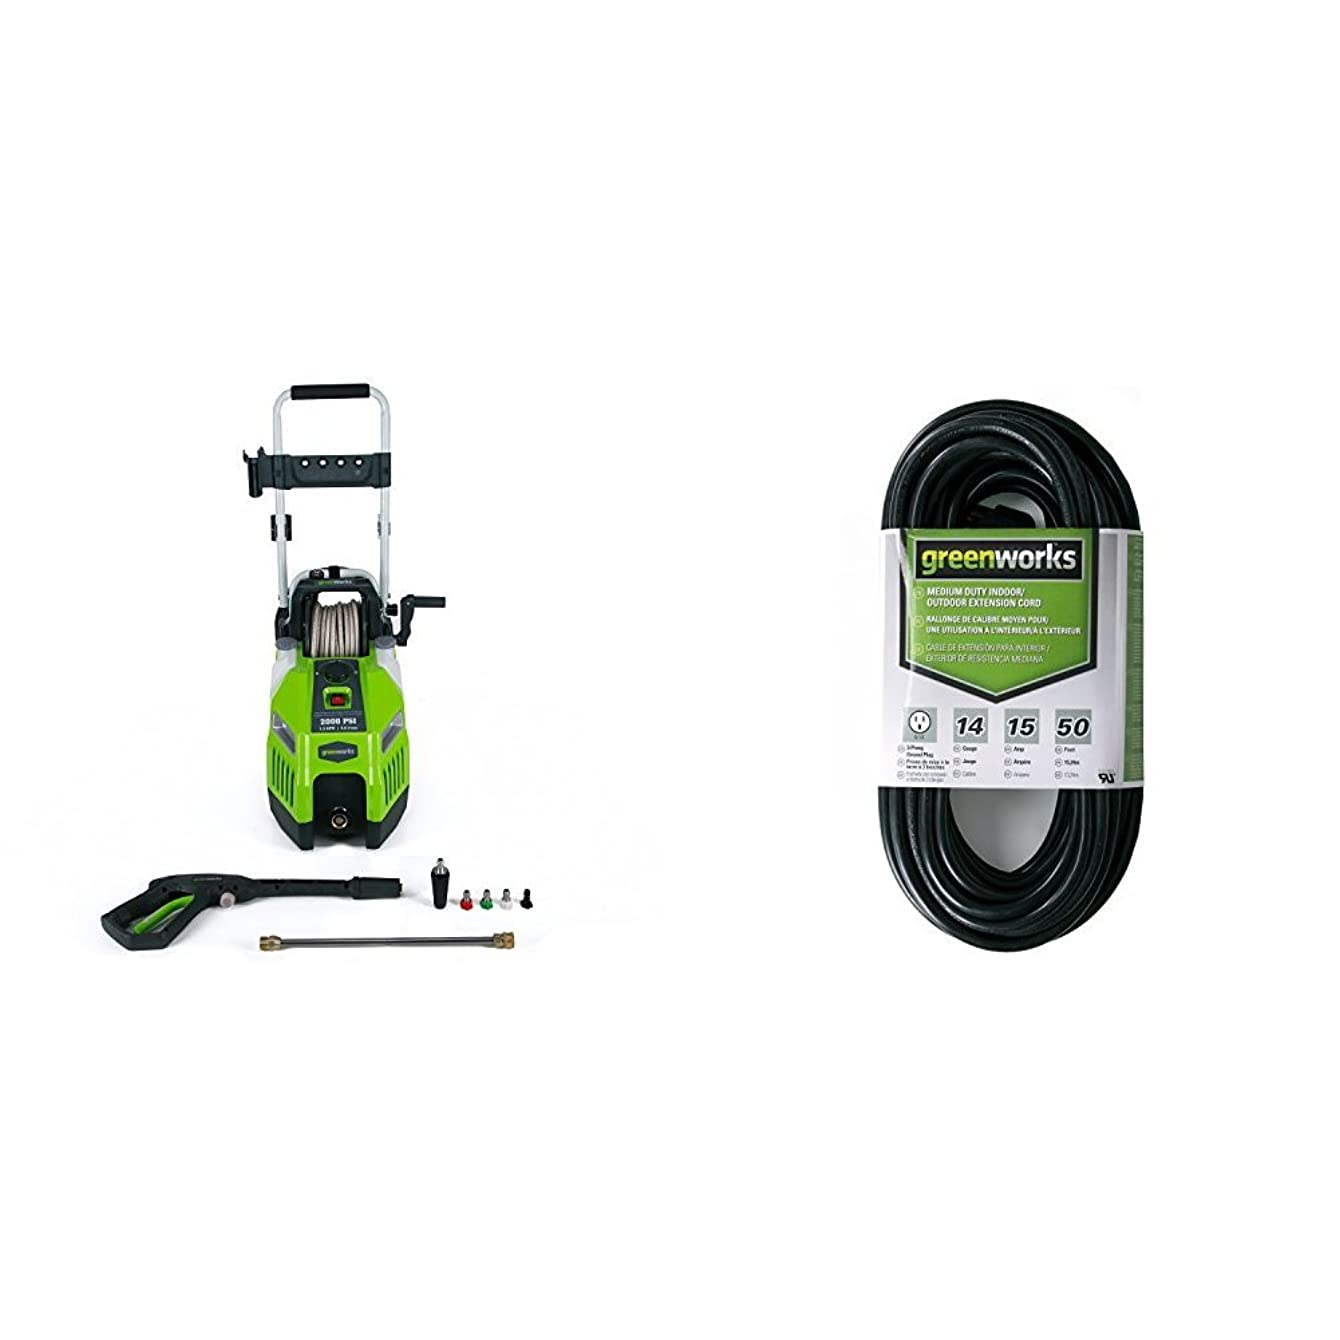 Greenworks 2000 PSI 13 Amp 1.2 GPM Pressure Washer with Hose Reel and 50-Foot Indoor & Outdoor Extension Cord